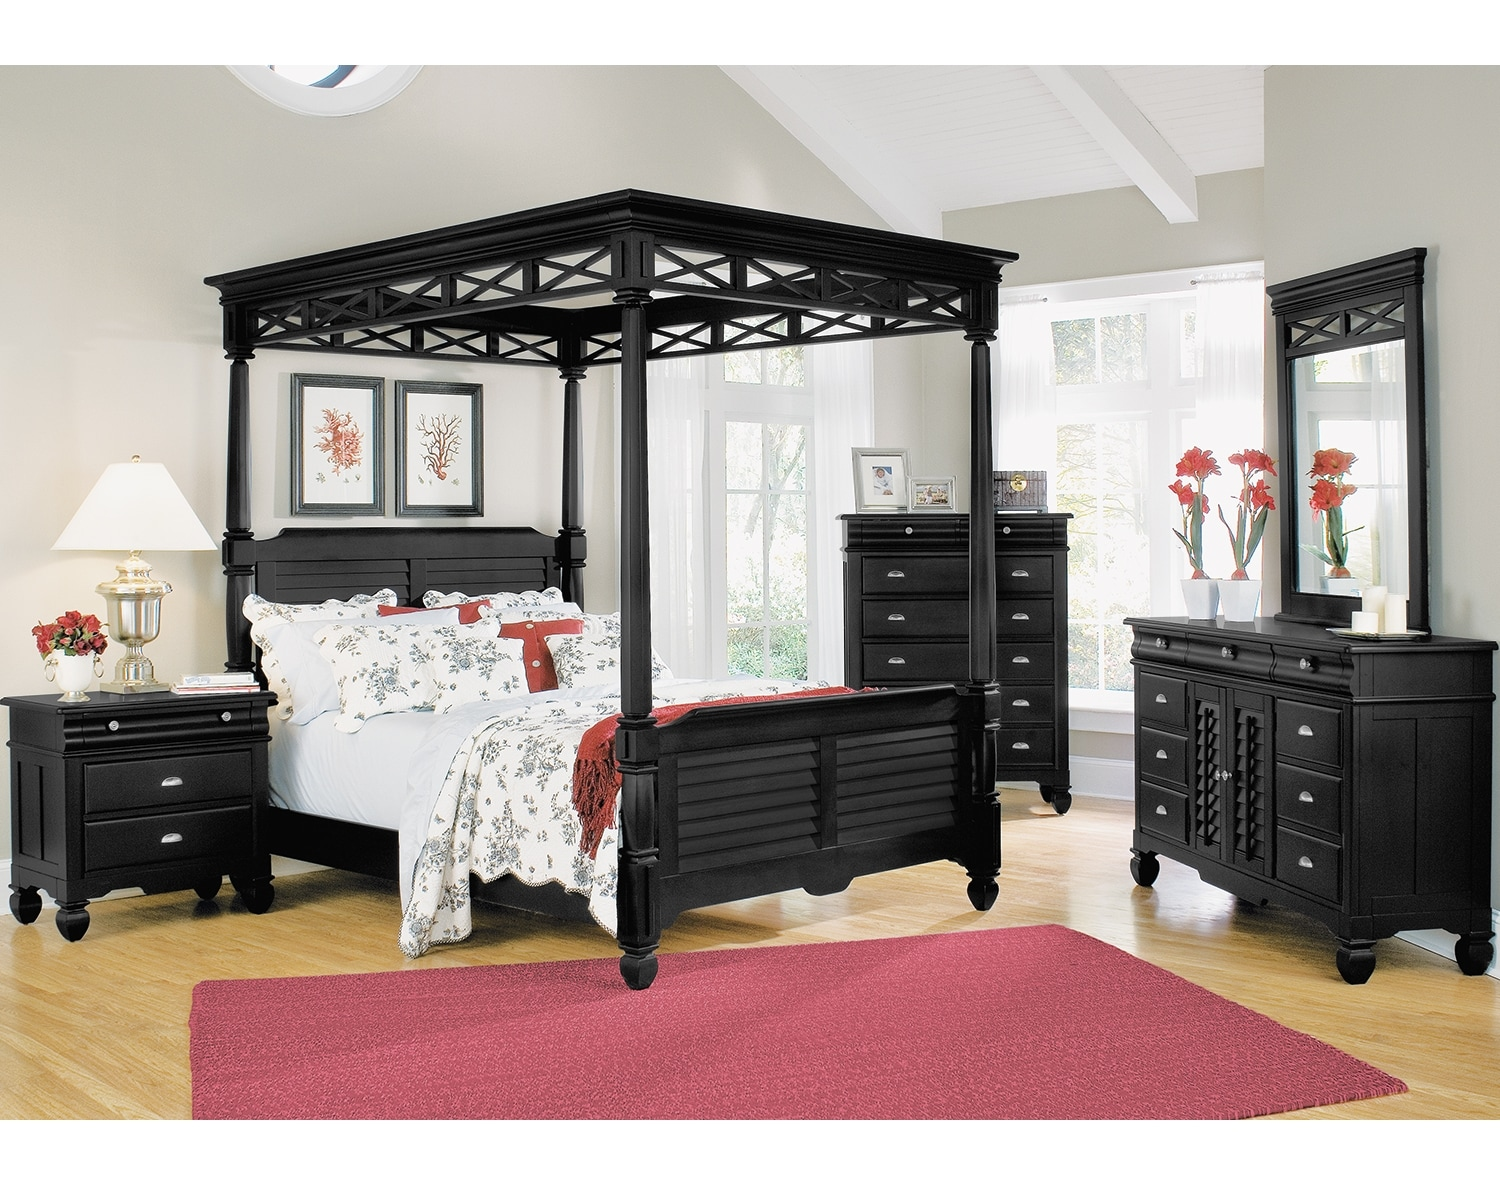 [The Plantation Cove Black Canopy Collection]